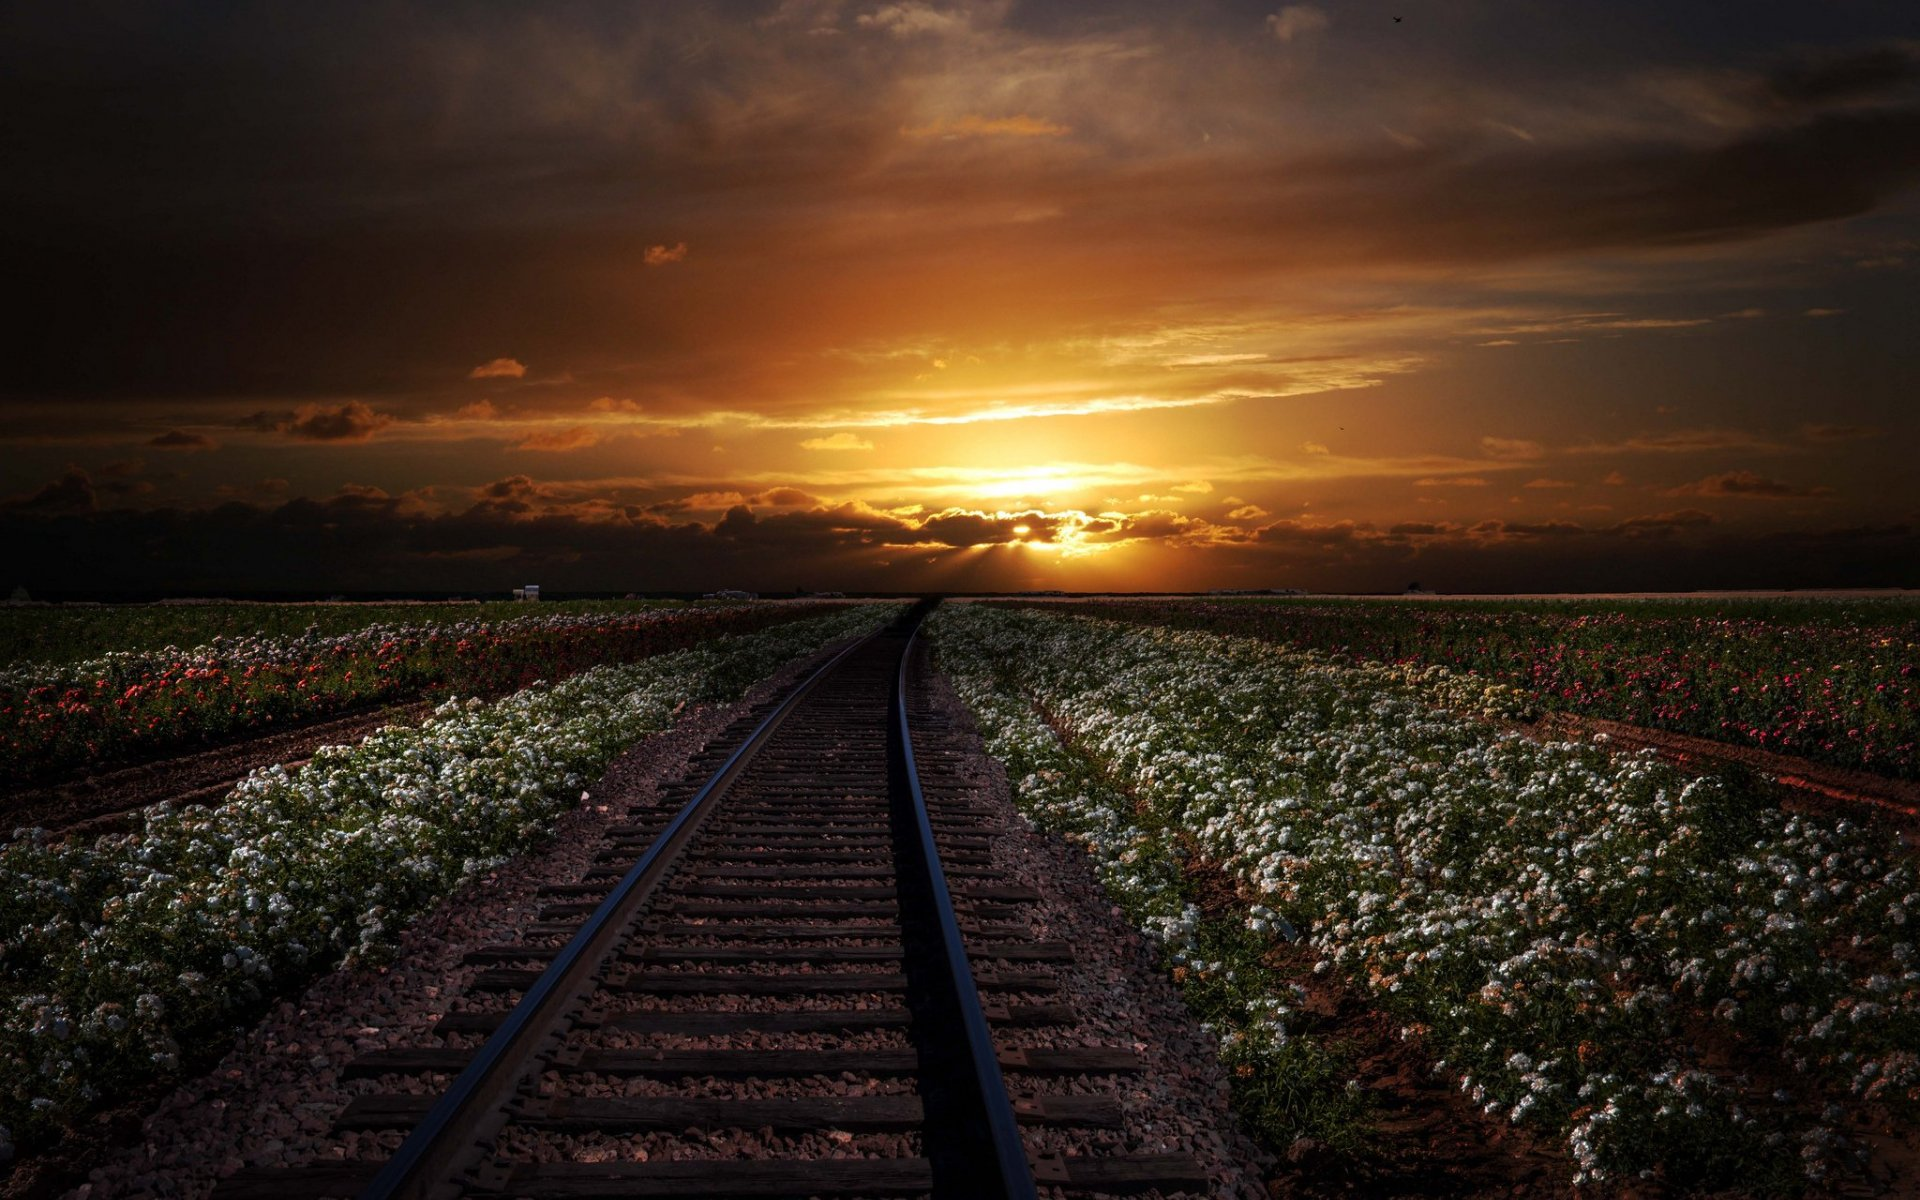 Iphone 4 Animated Wallpaper Rail Road White Flowers Sunset Wallpapers Rail Road